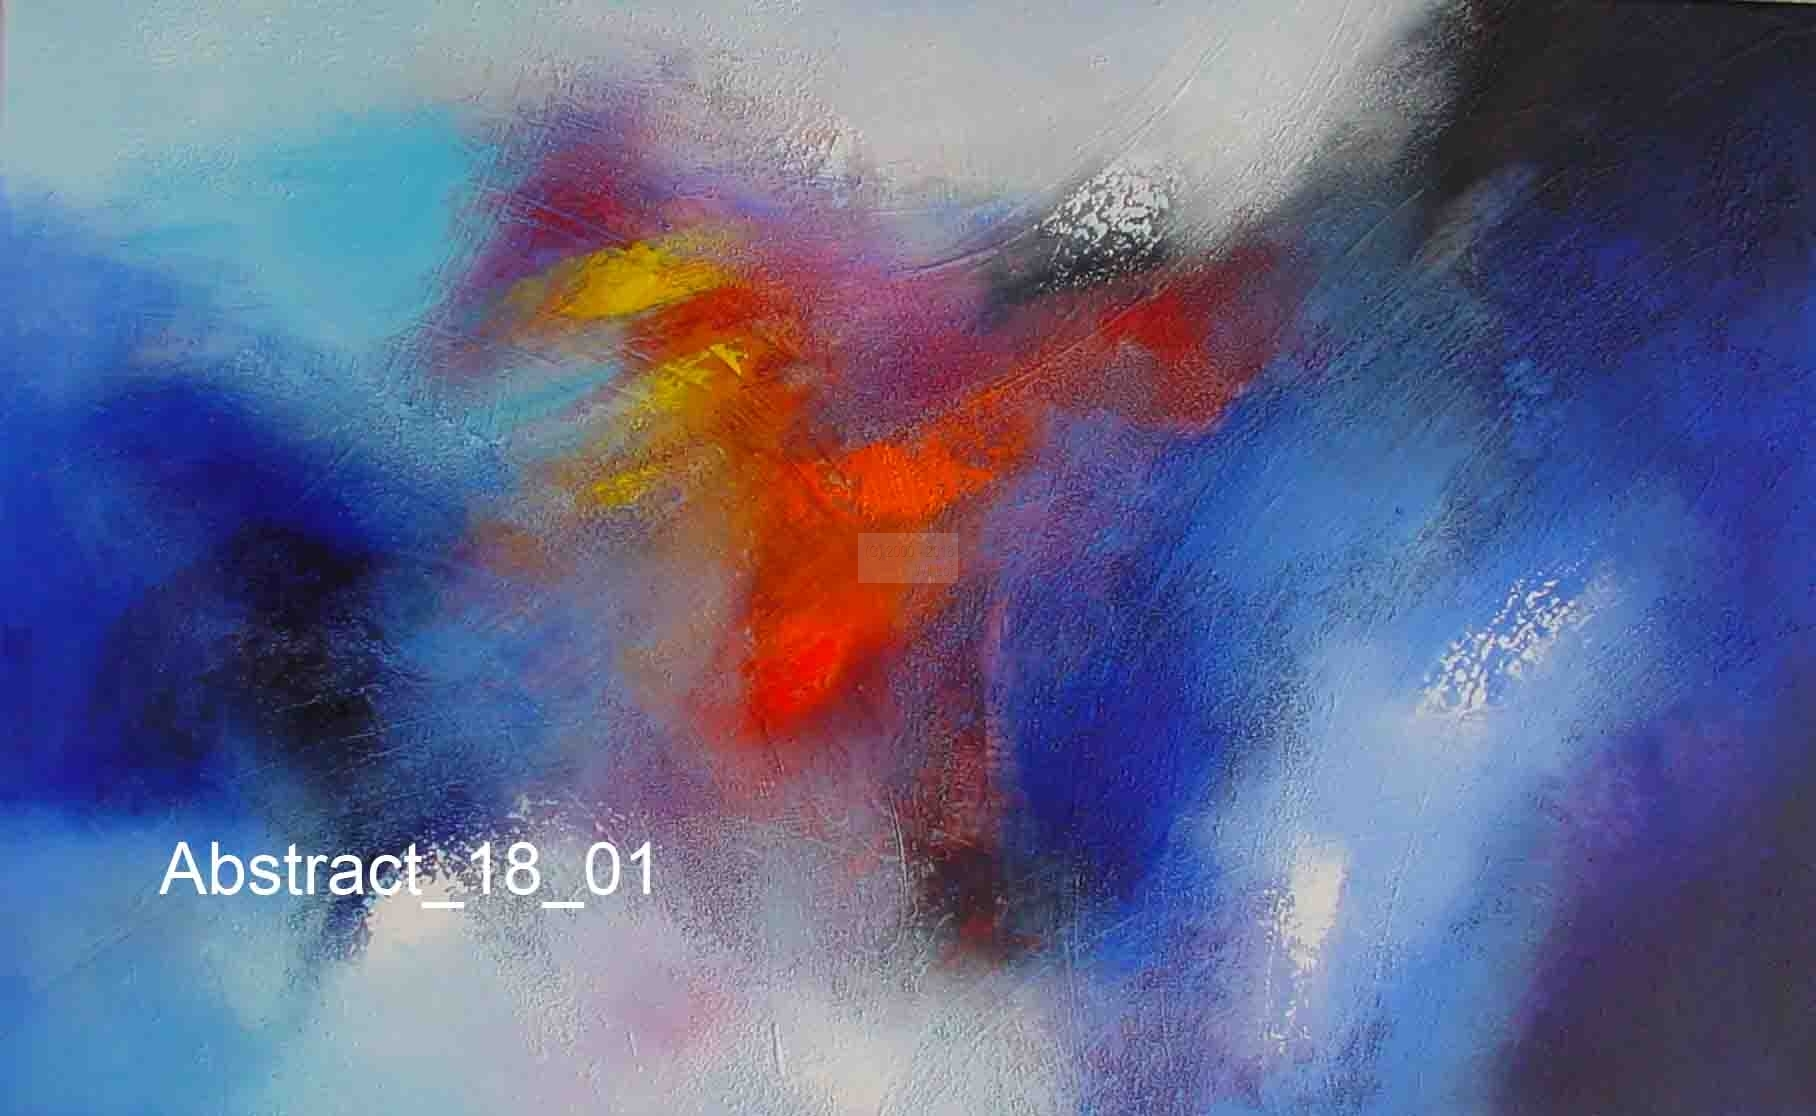 Abstract_18_01 afm. 130 x 80 x 4